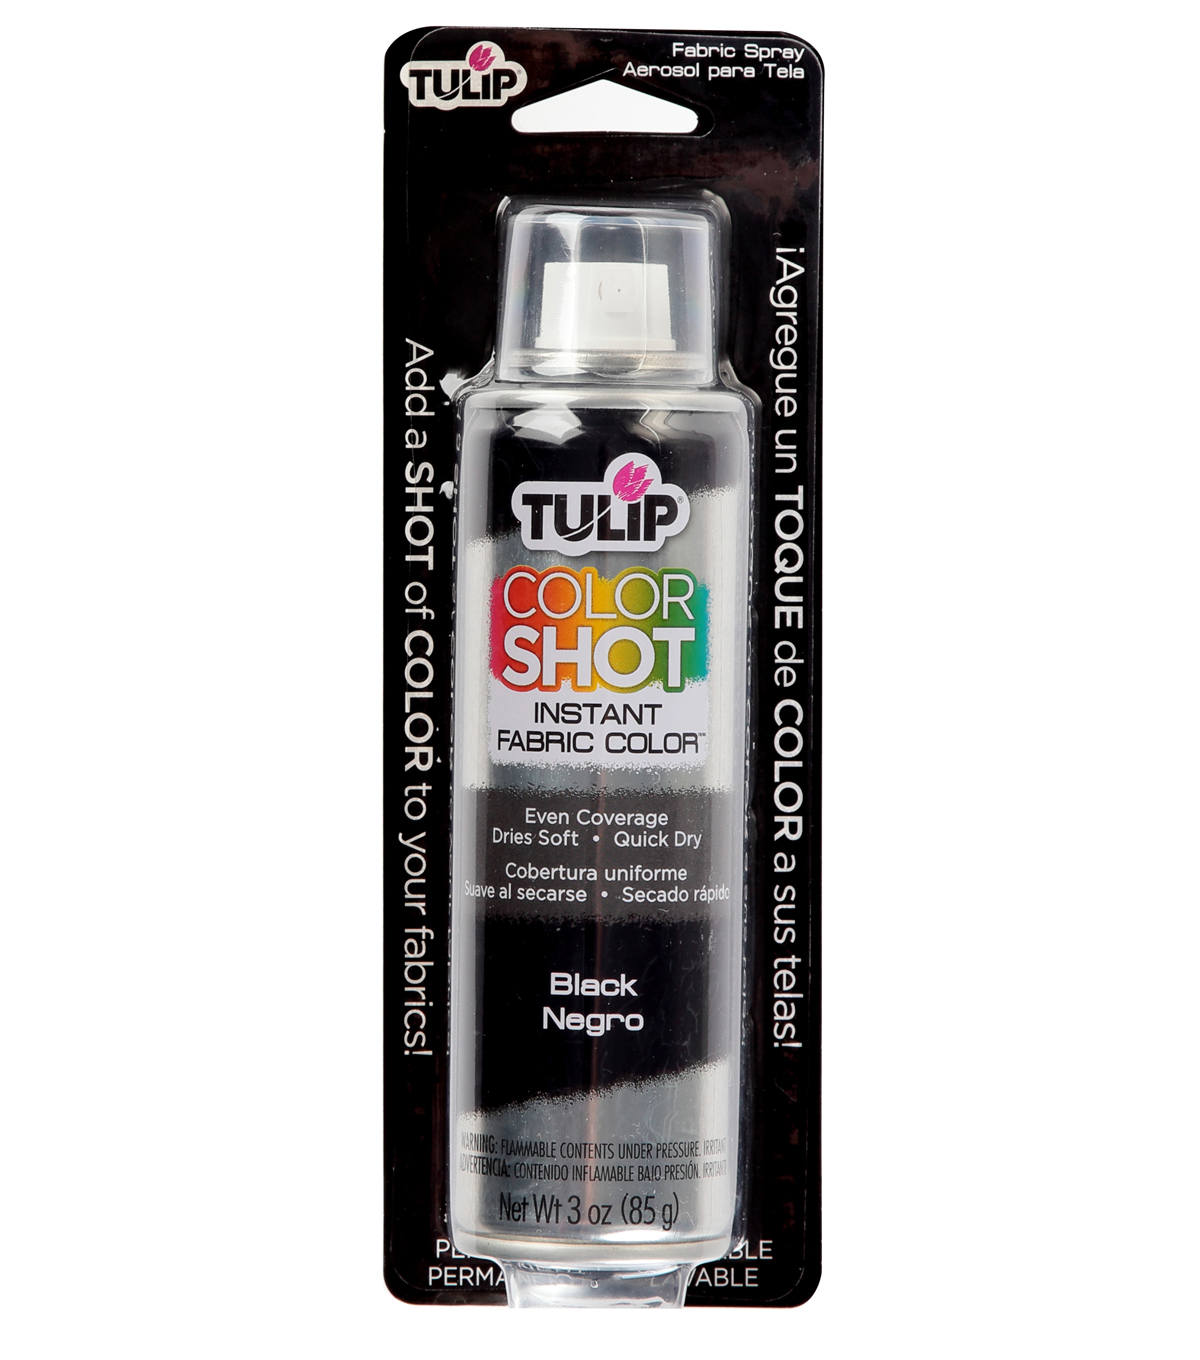 Tulip ColorShot Instant Fabric Color Spray 3oz, Black